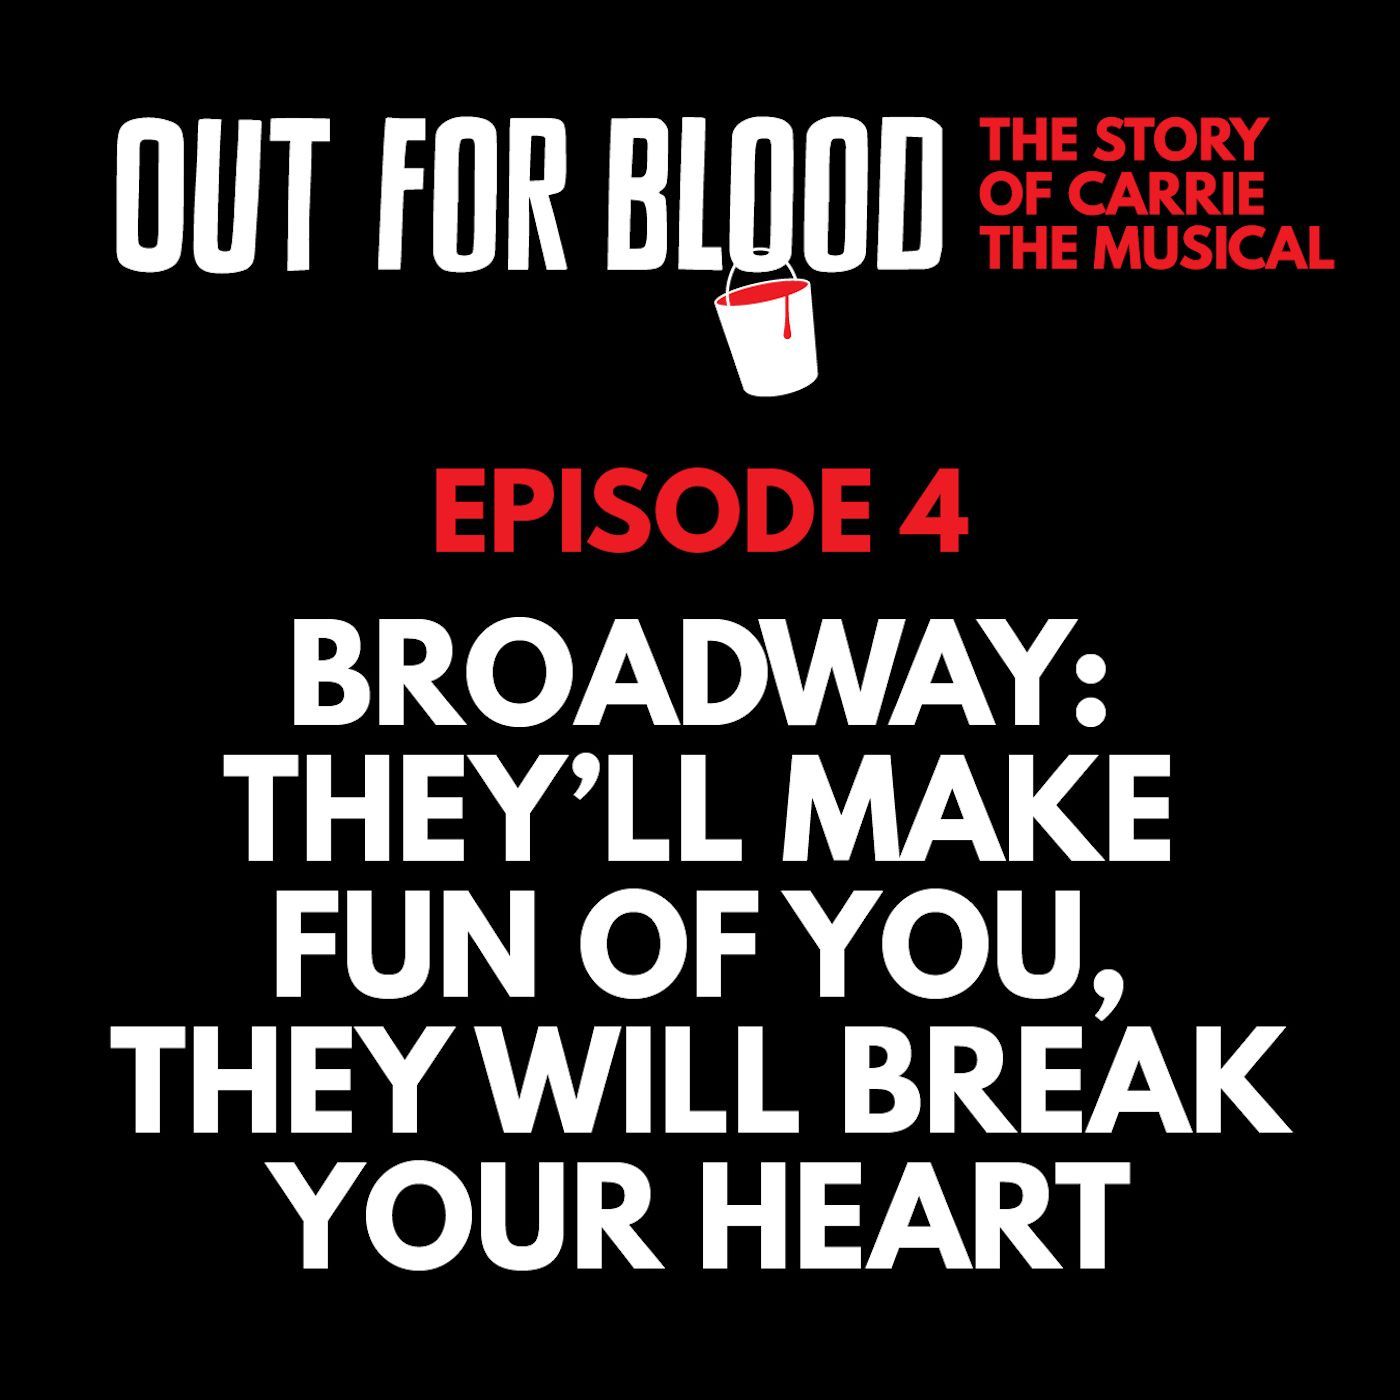 Chapter 4: Broadway: They'll make fun of you, they will break your heart